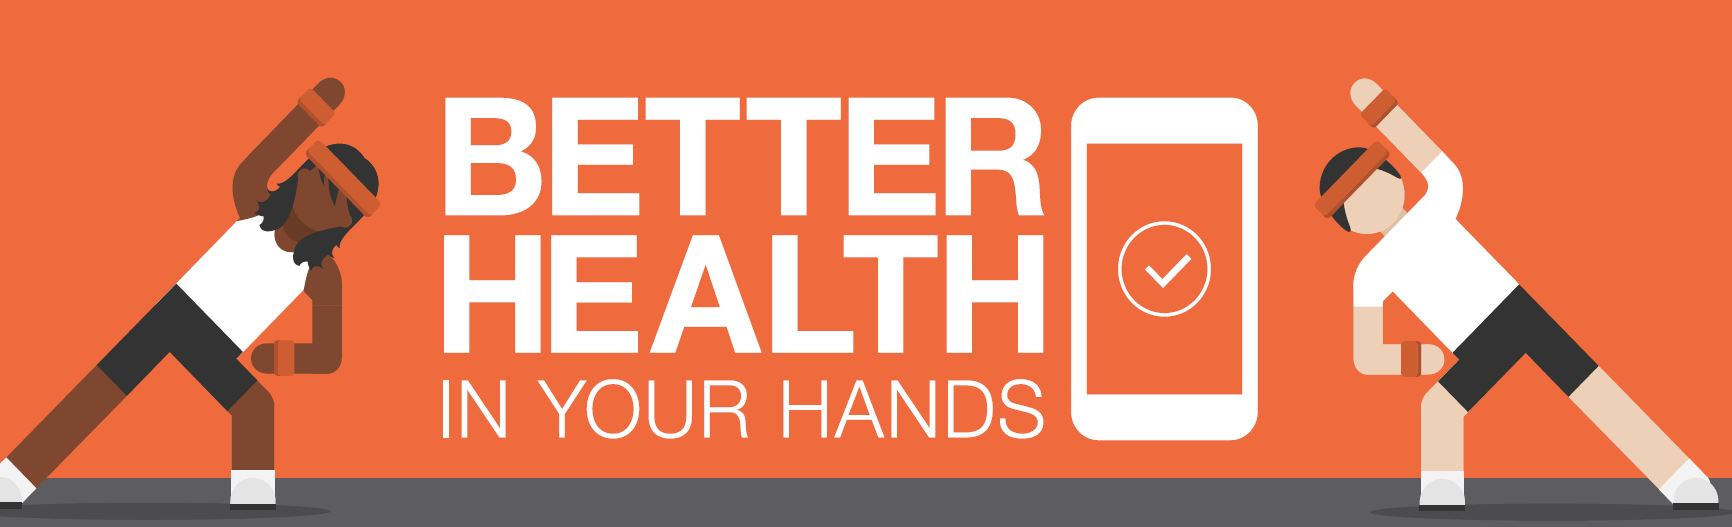 Better Health in Your Hands